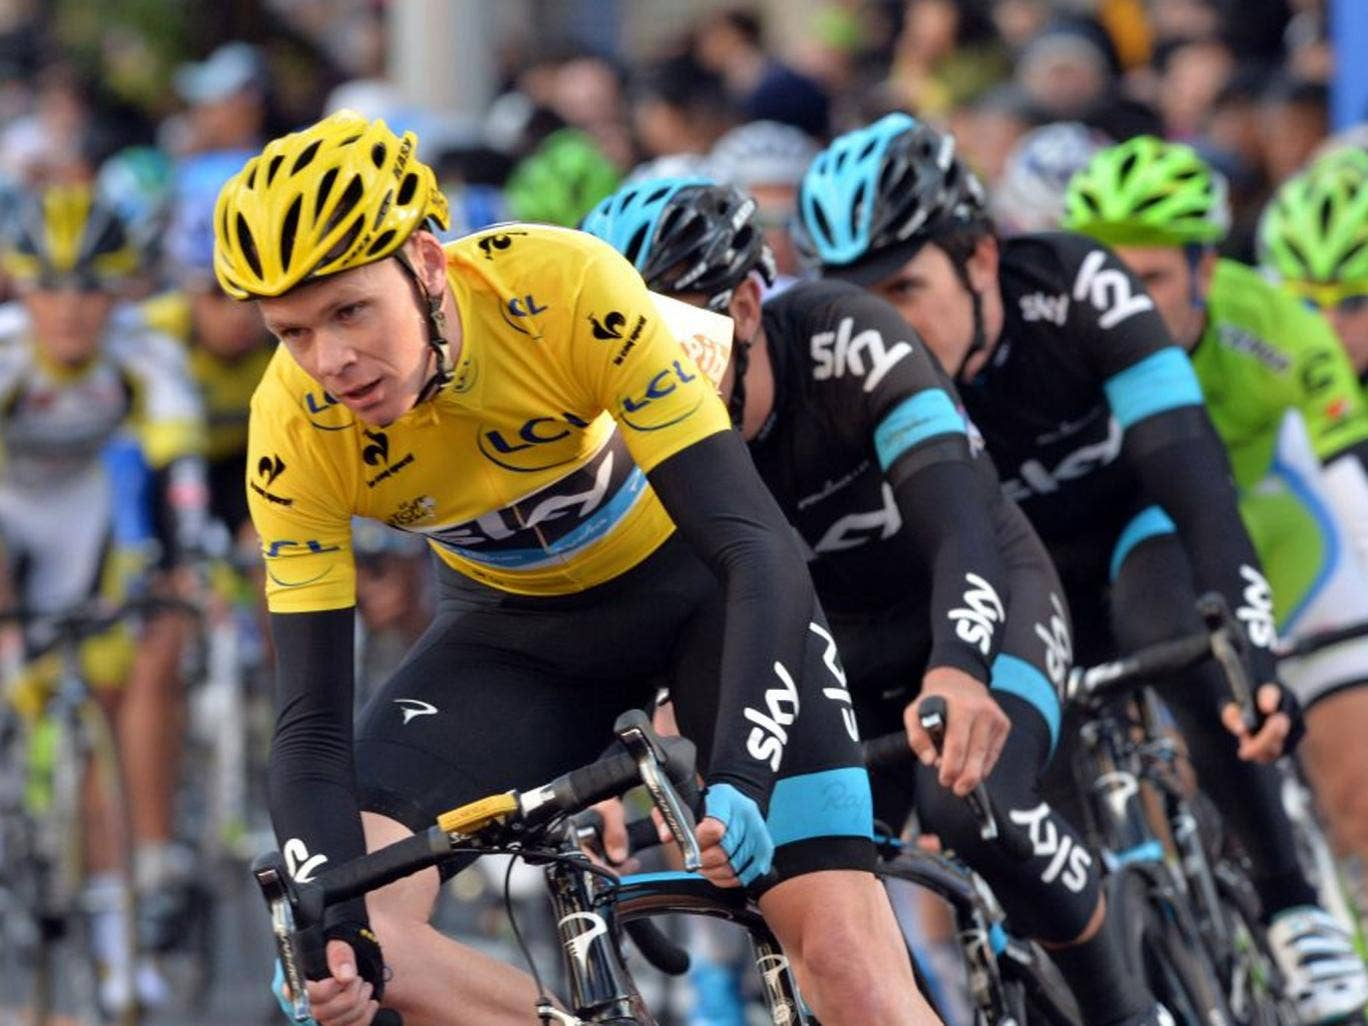 Hosting the Tour de France for two days in Yorkshire has left the organisers with a potential £2.3 million black hole